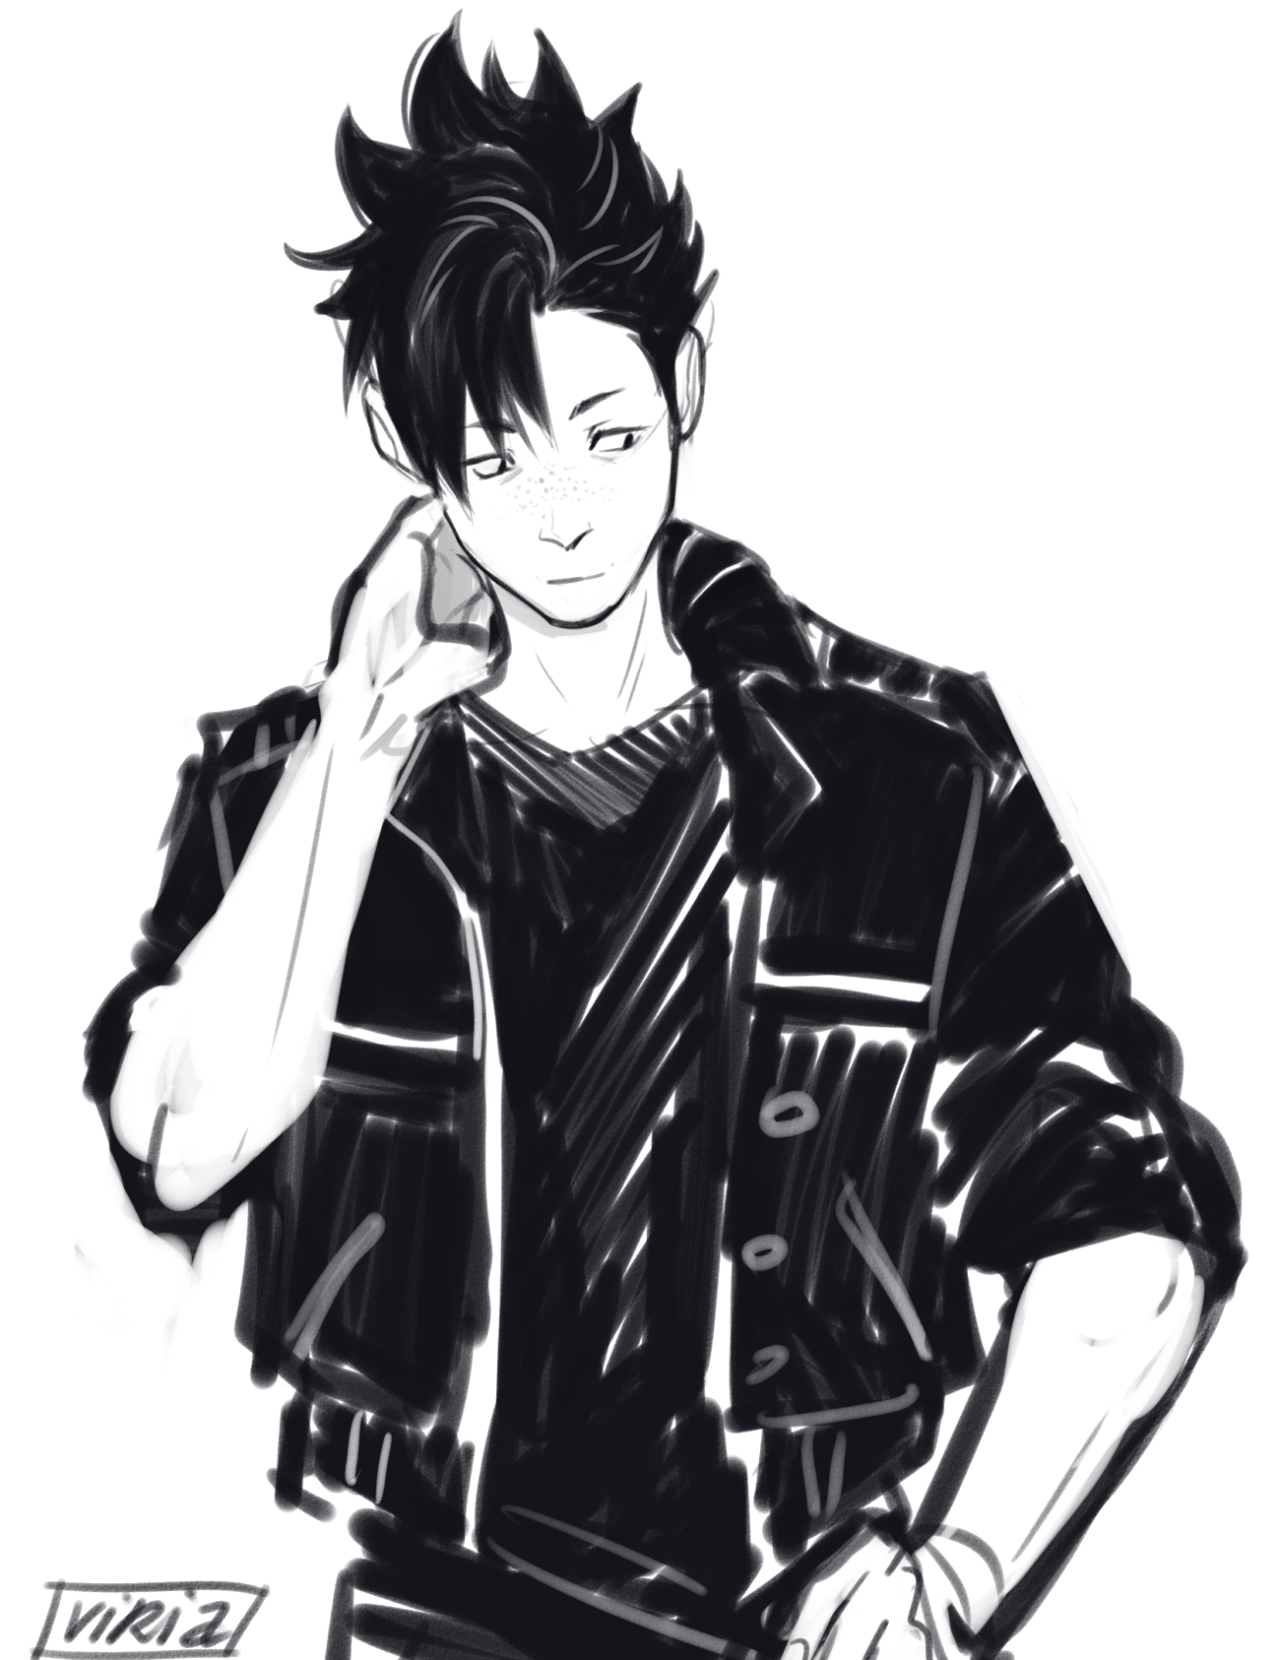 """imagine kuroo with freckles"" Аниме, Волейбол"